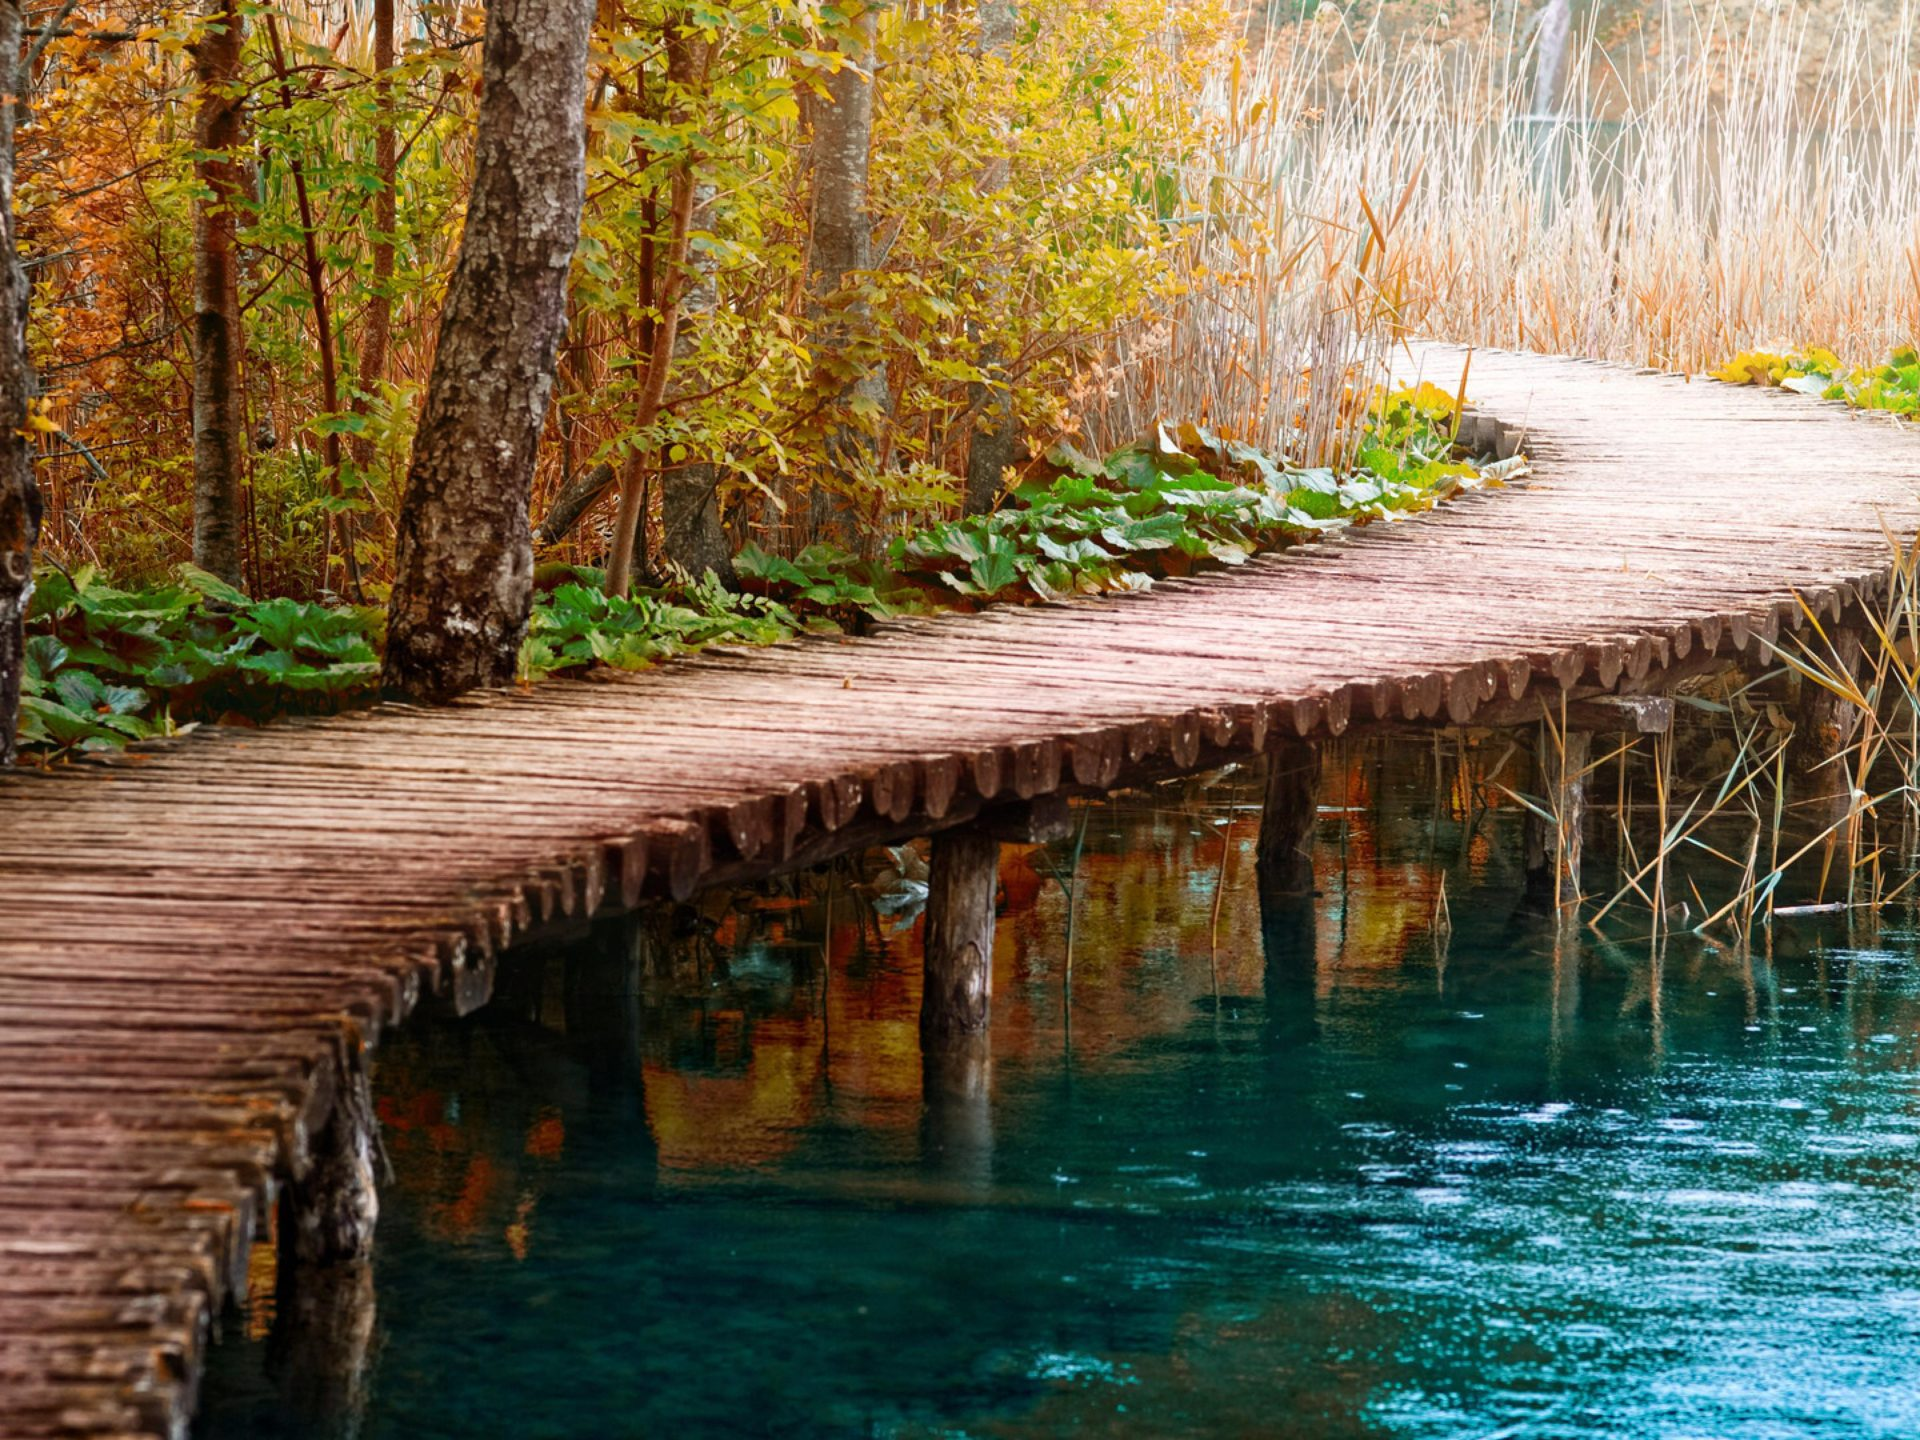 1024x768 Hd Wallpapers Free Download Autumn Background River Wooden Path Bridge Cane Reeds Dry